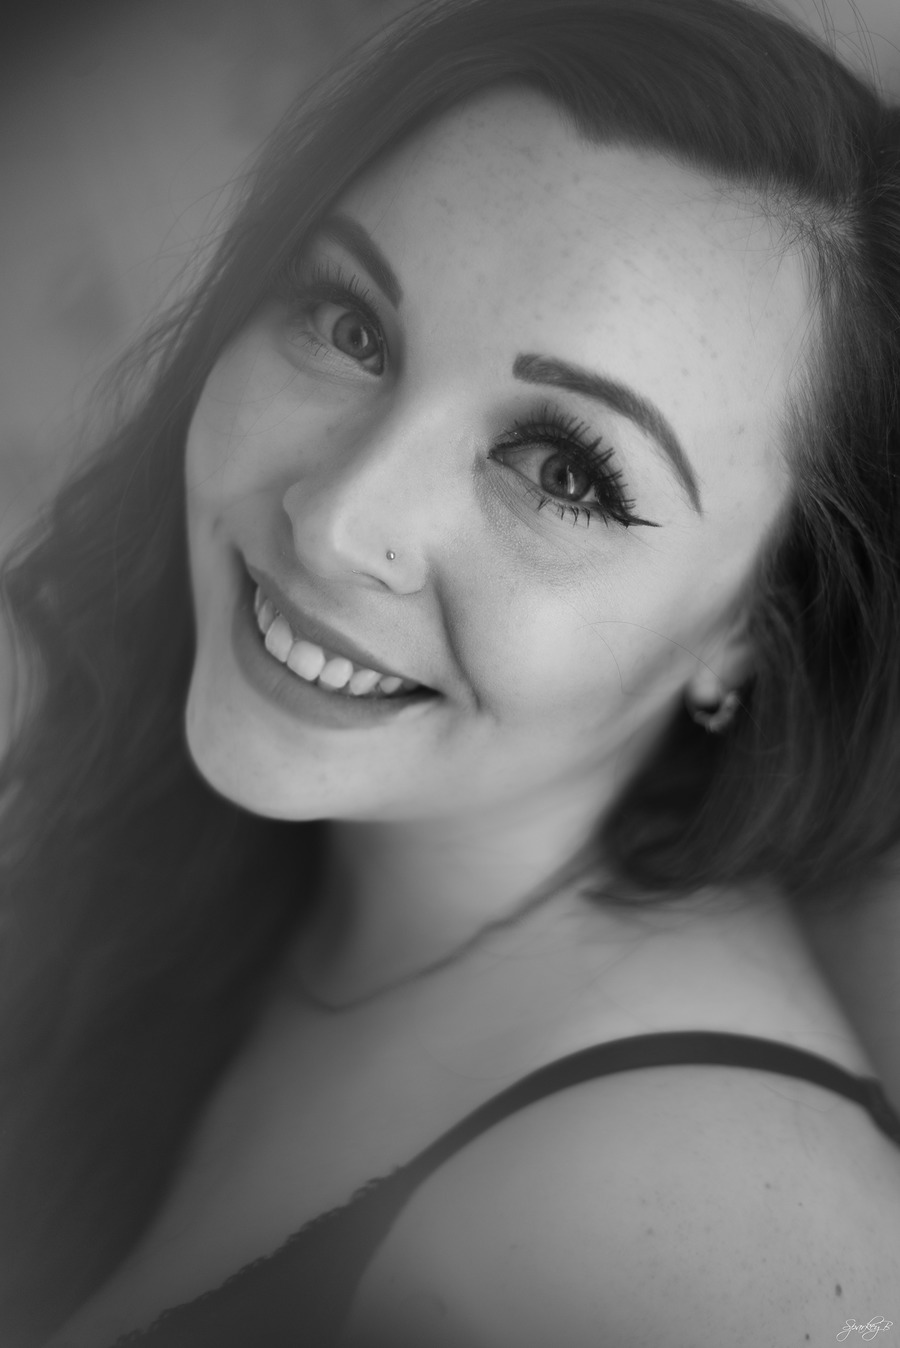 There's always a reason to smile / Photography by SparkeyB, Model Belle Rose, Makeup by Belle Rose, Hair styling by Belle Rose / Uploaded 21st January 2019 @ 10:09 PM